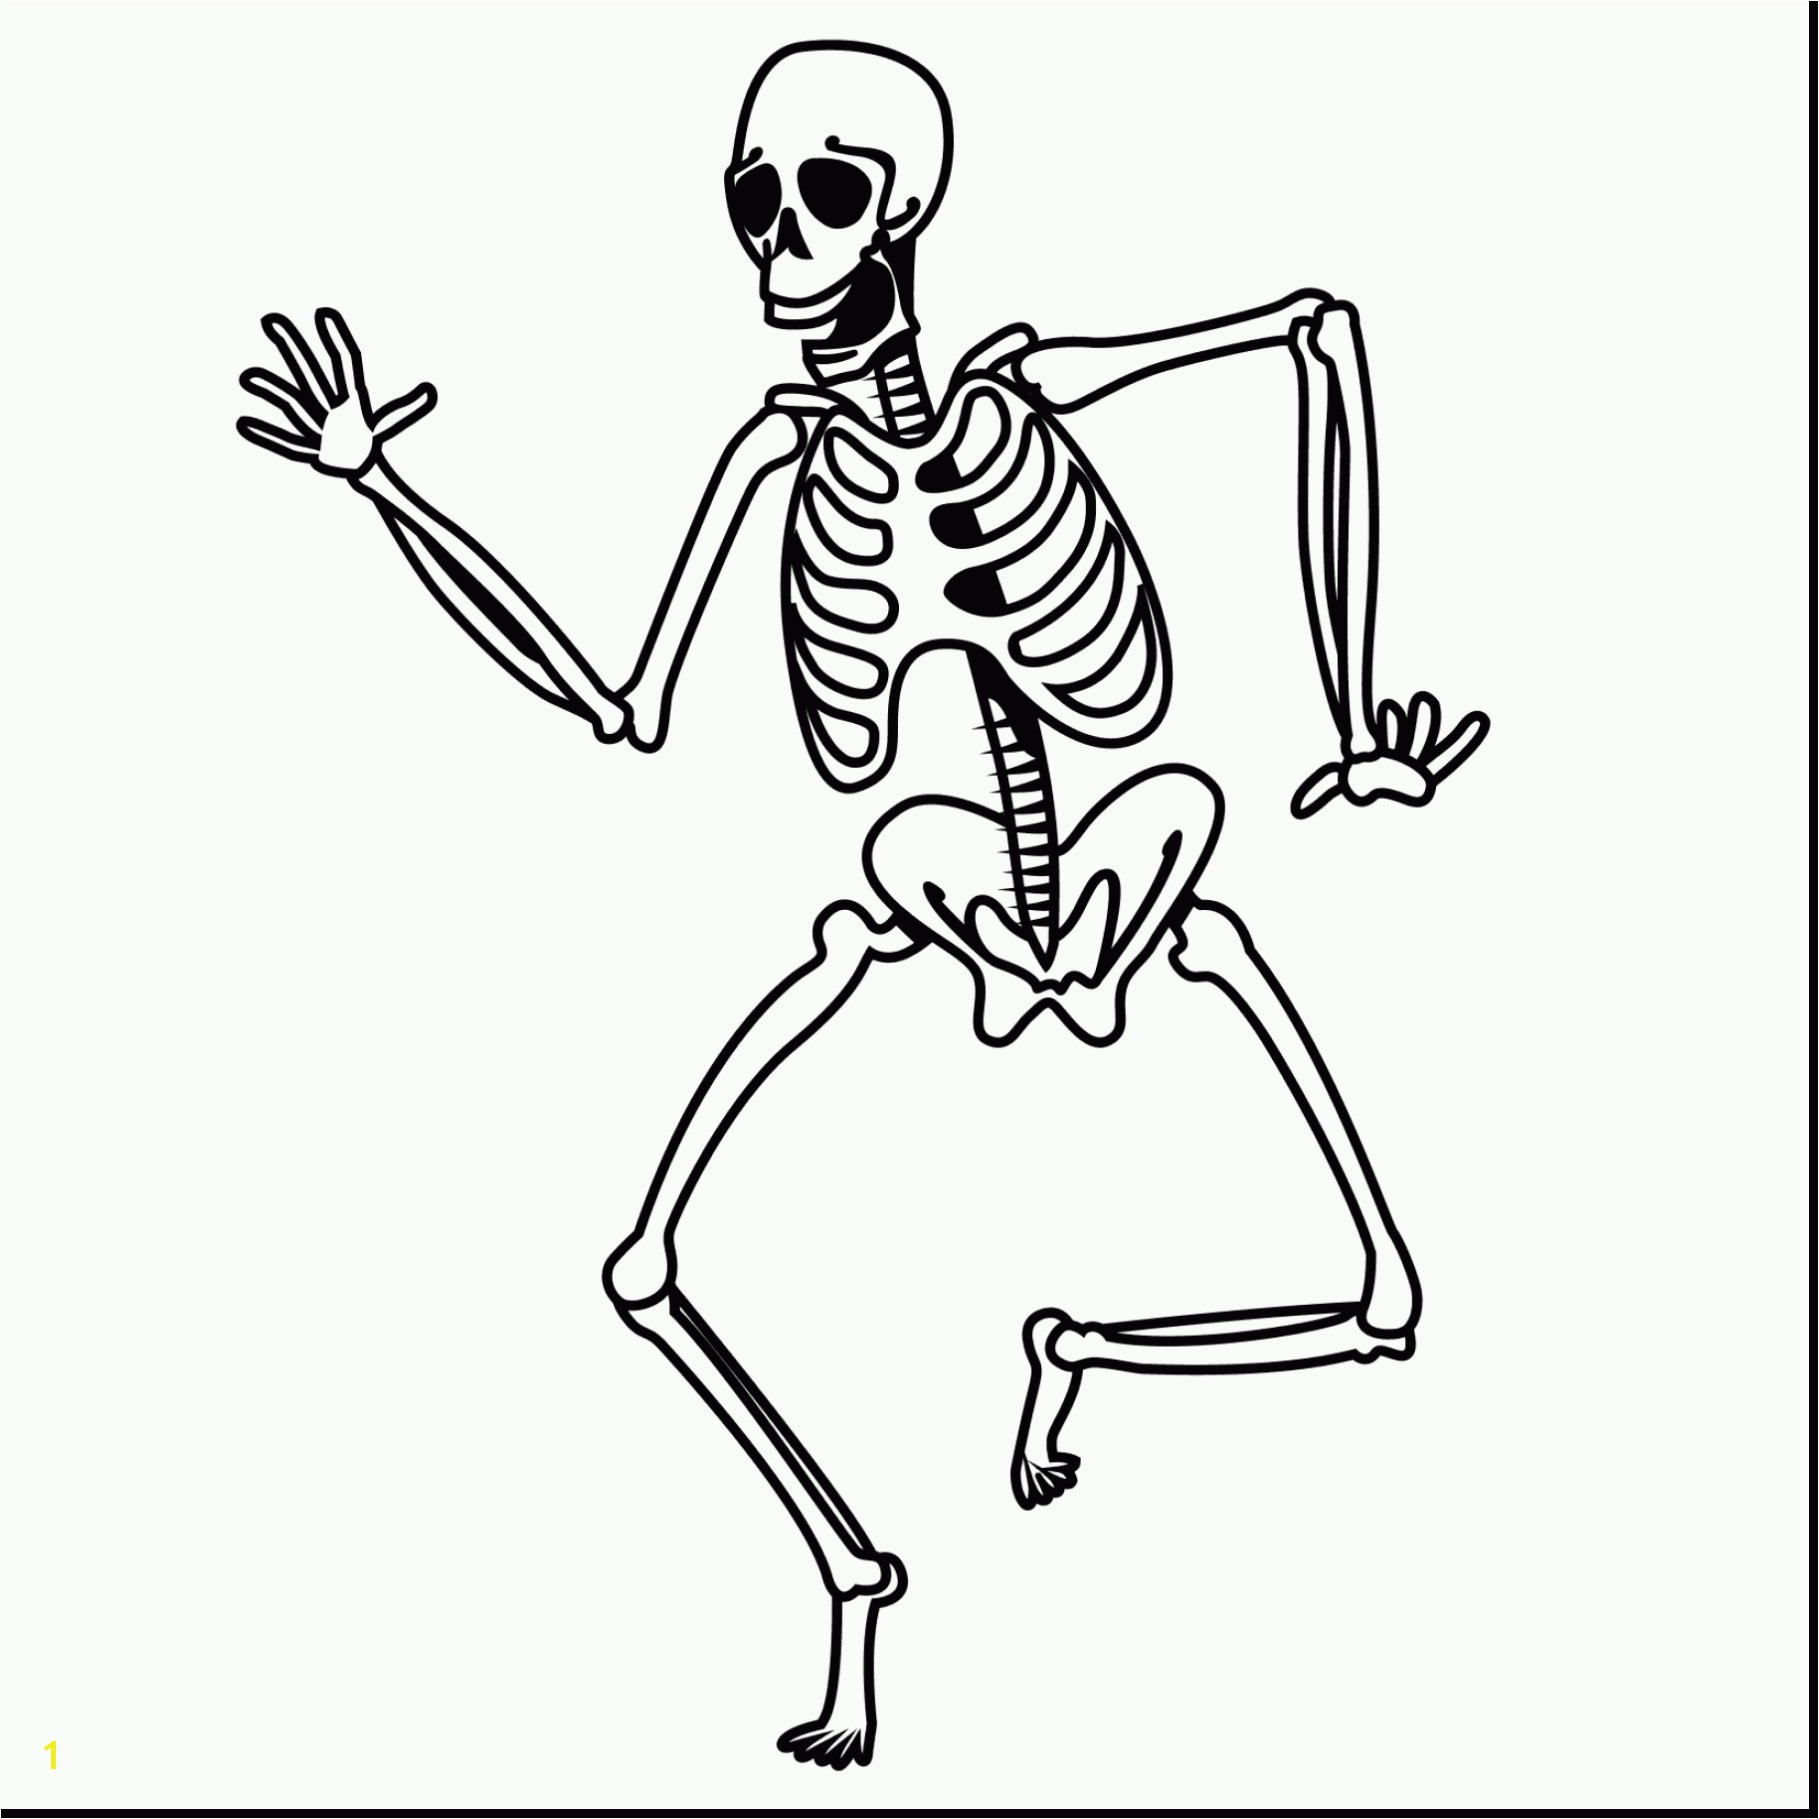 Ezekiel Dry Bones Coloring Page Fresh 47 Inspirational Pics Halloween Skeleton Coloring Pages Gallery